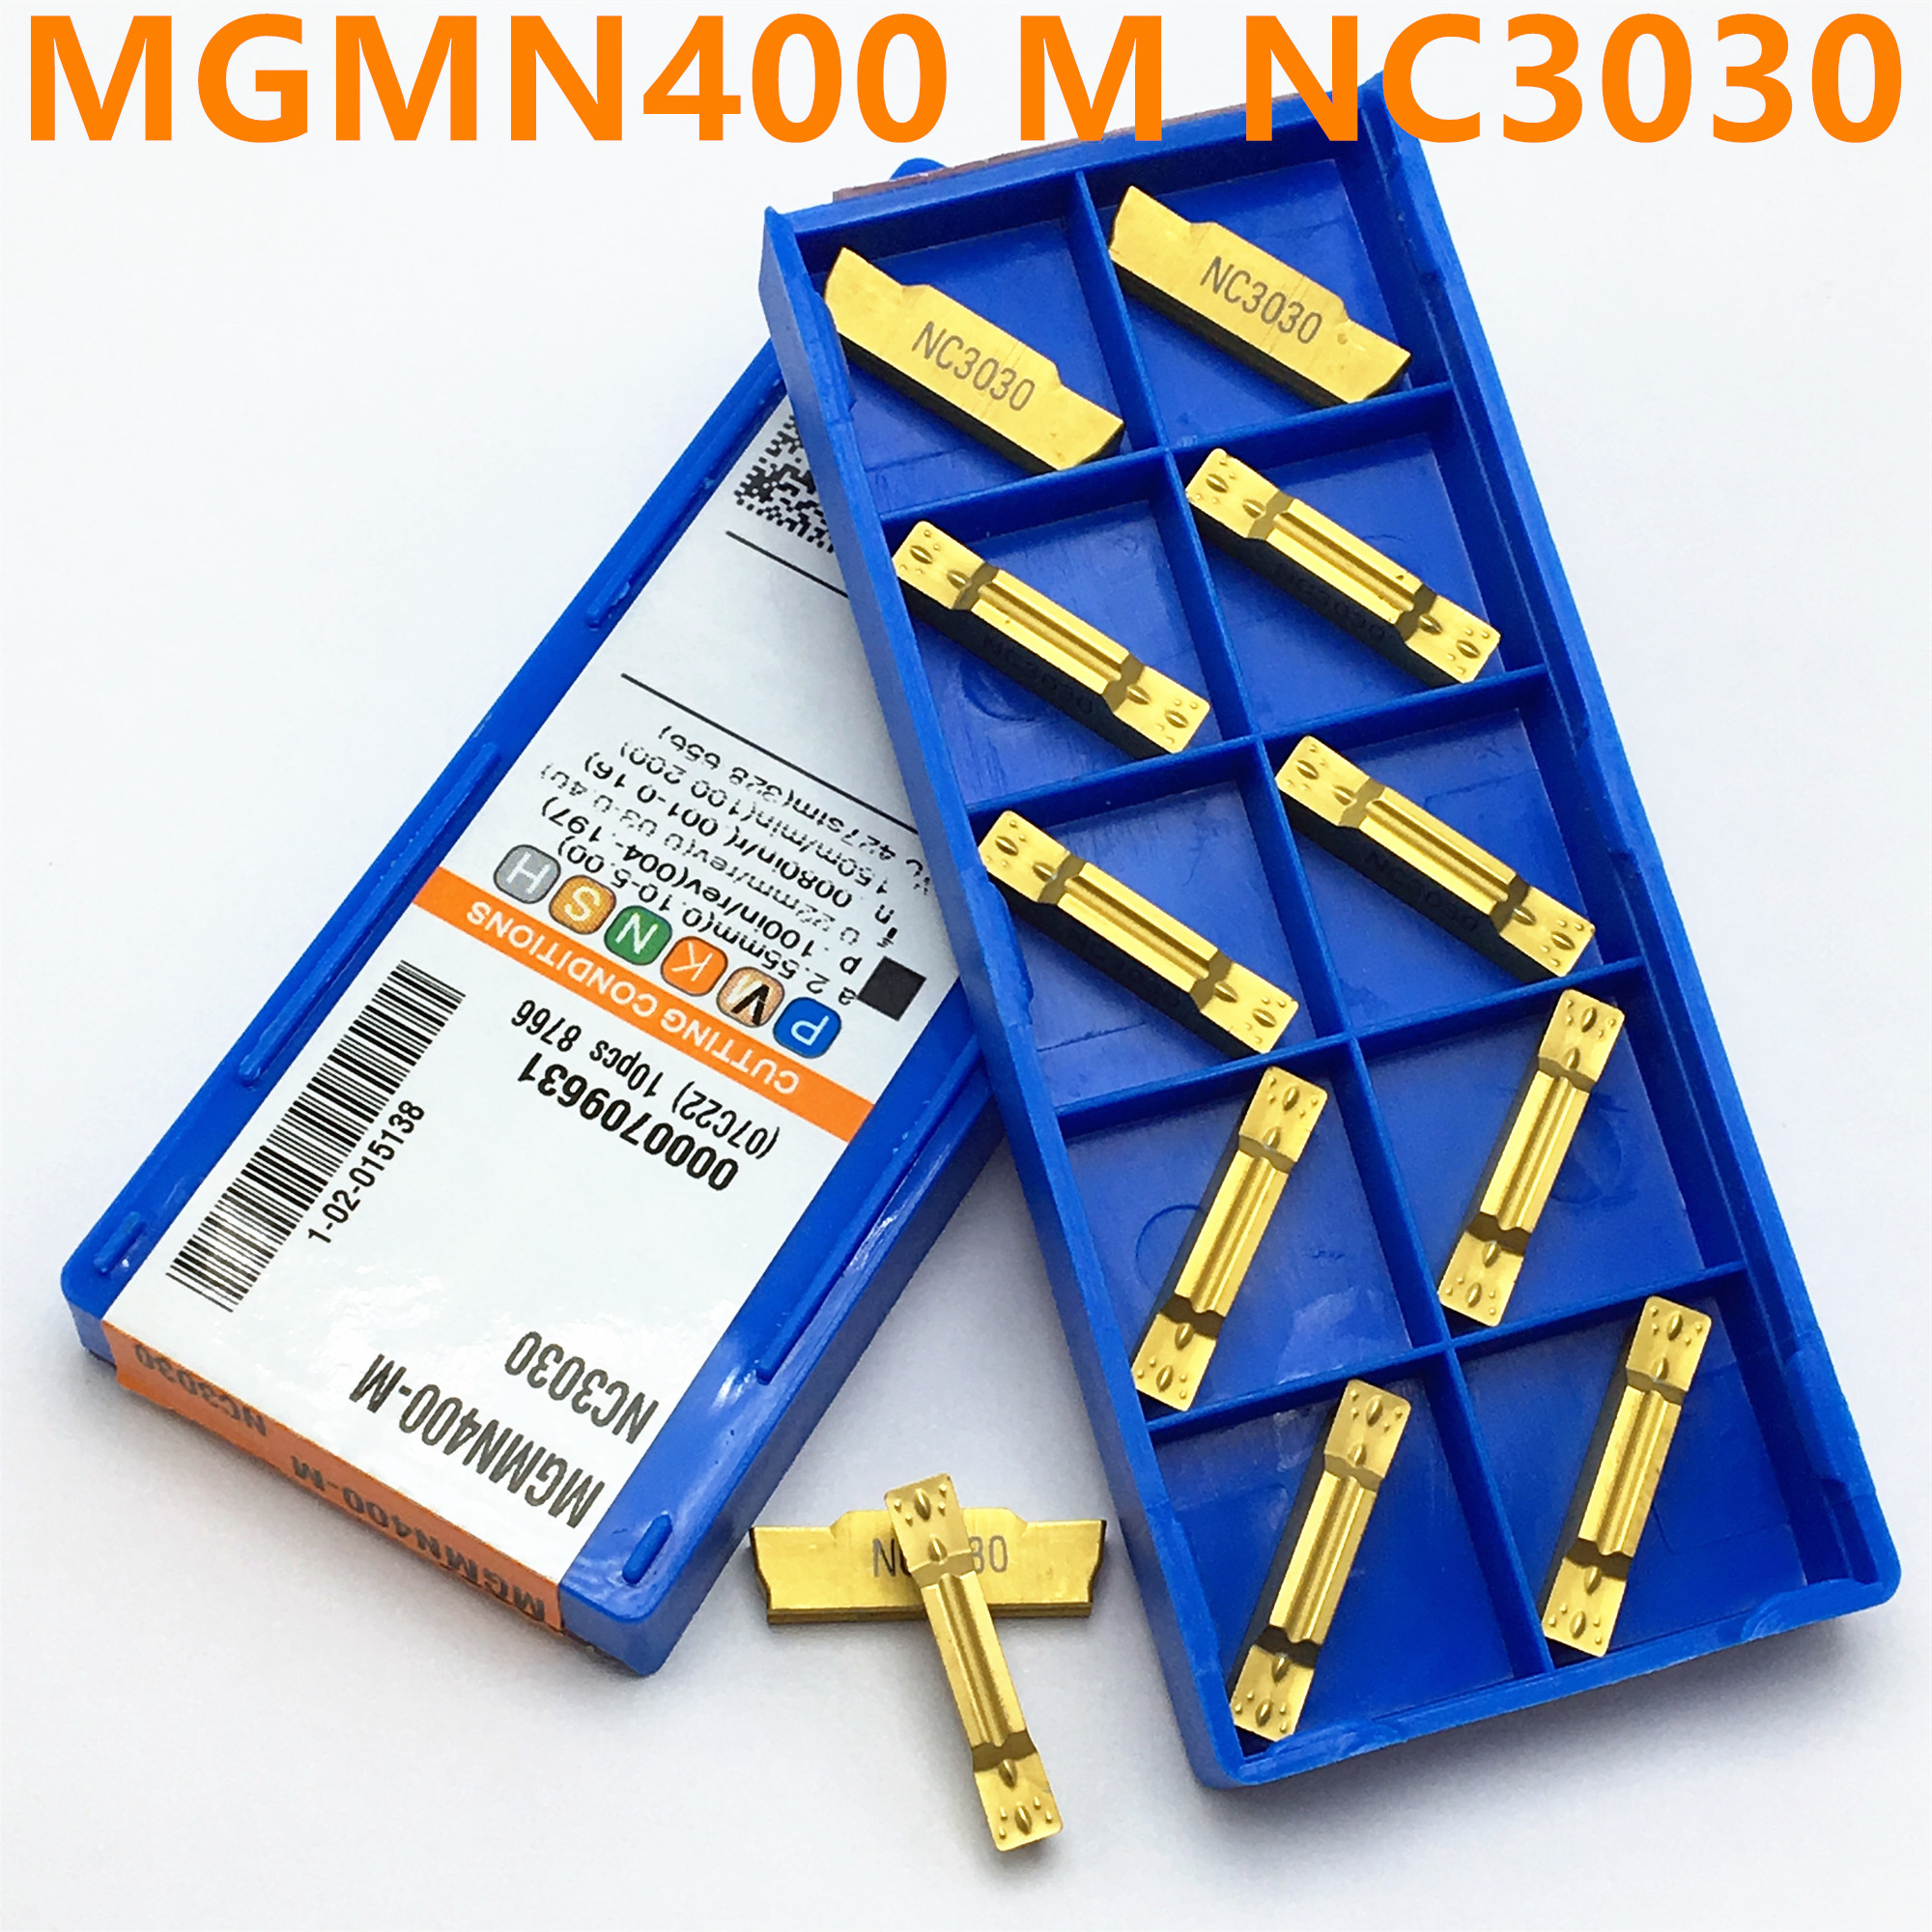 10PCS MGMN400 M NC3030 NC3020 PC9030 4mm Slotted Carbide MGMN400-M Lathe Milling Cutter Turning And Grooving Tool Cutting